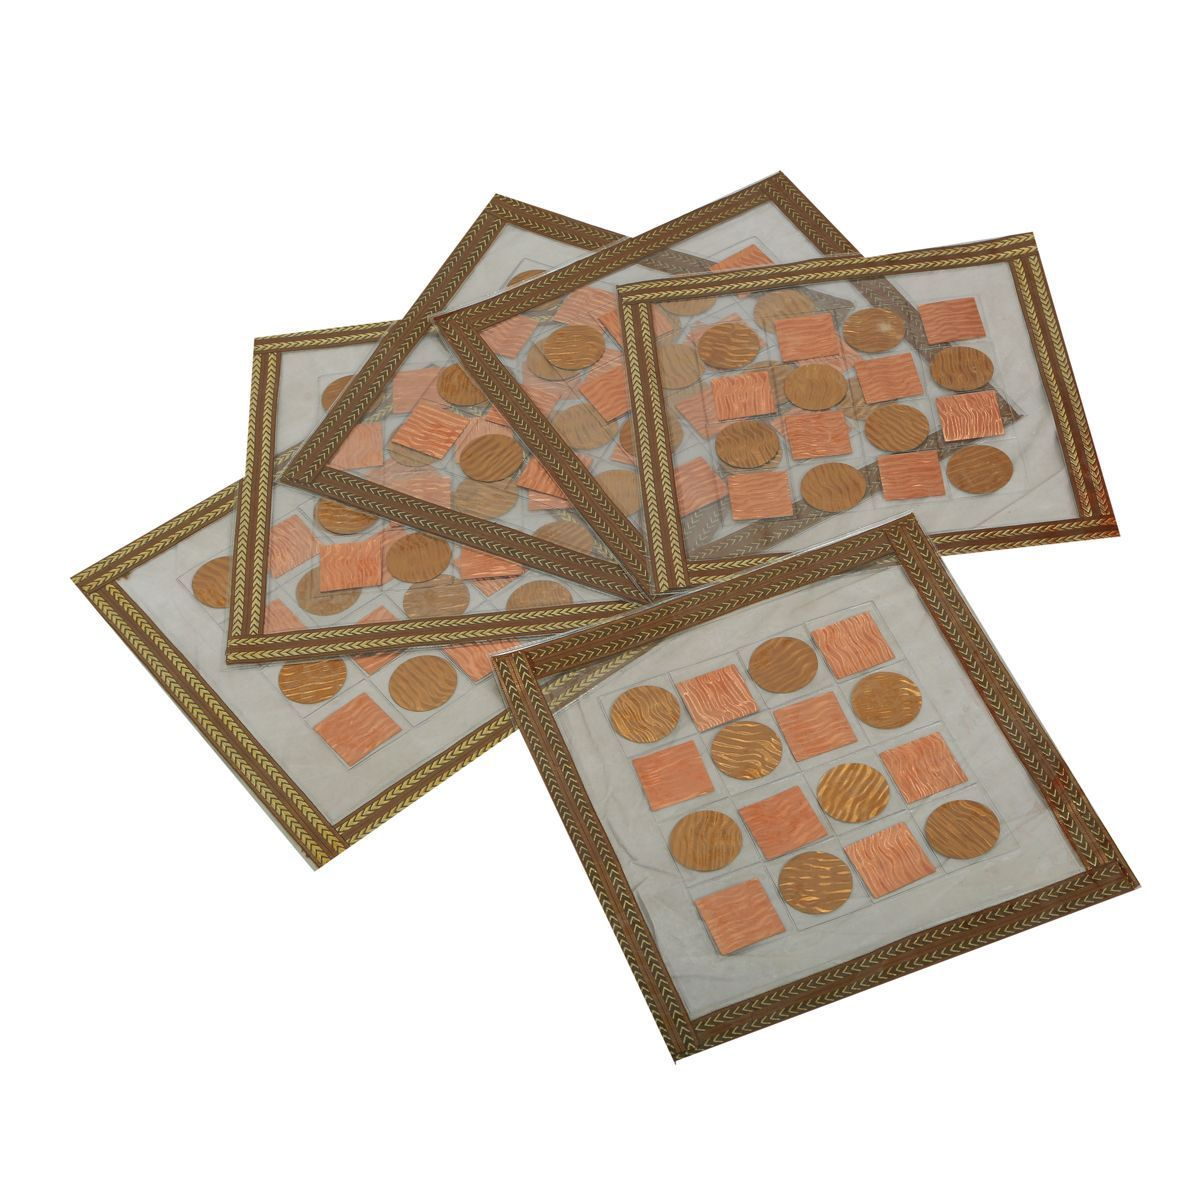 """Kuber Industriesâ""¢ Bed Side Table Mat,Table Mat Set of 6 Pcs in laminated Patch Design (Square 30 x 30 Cm) KU168 """